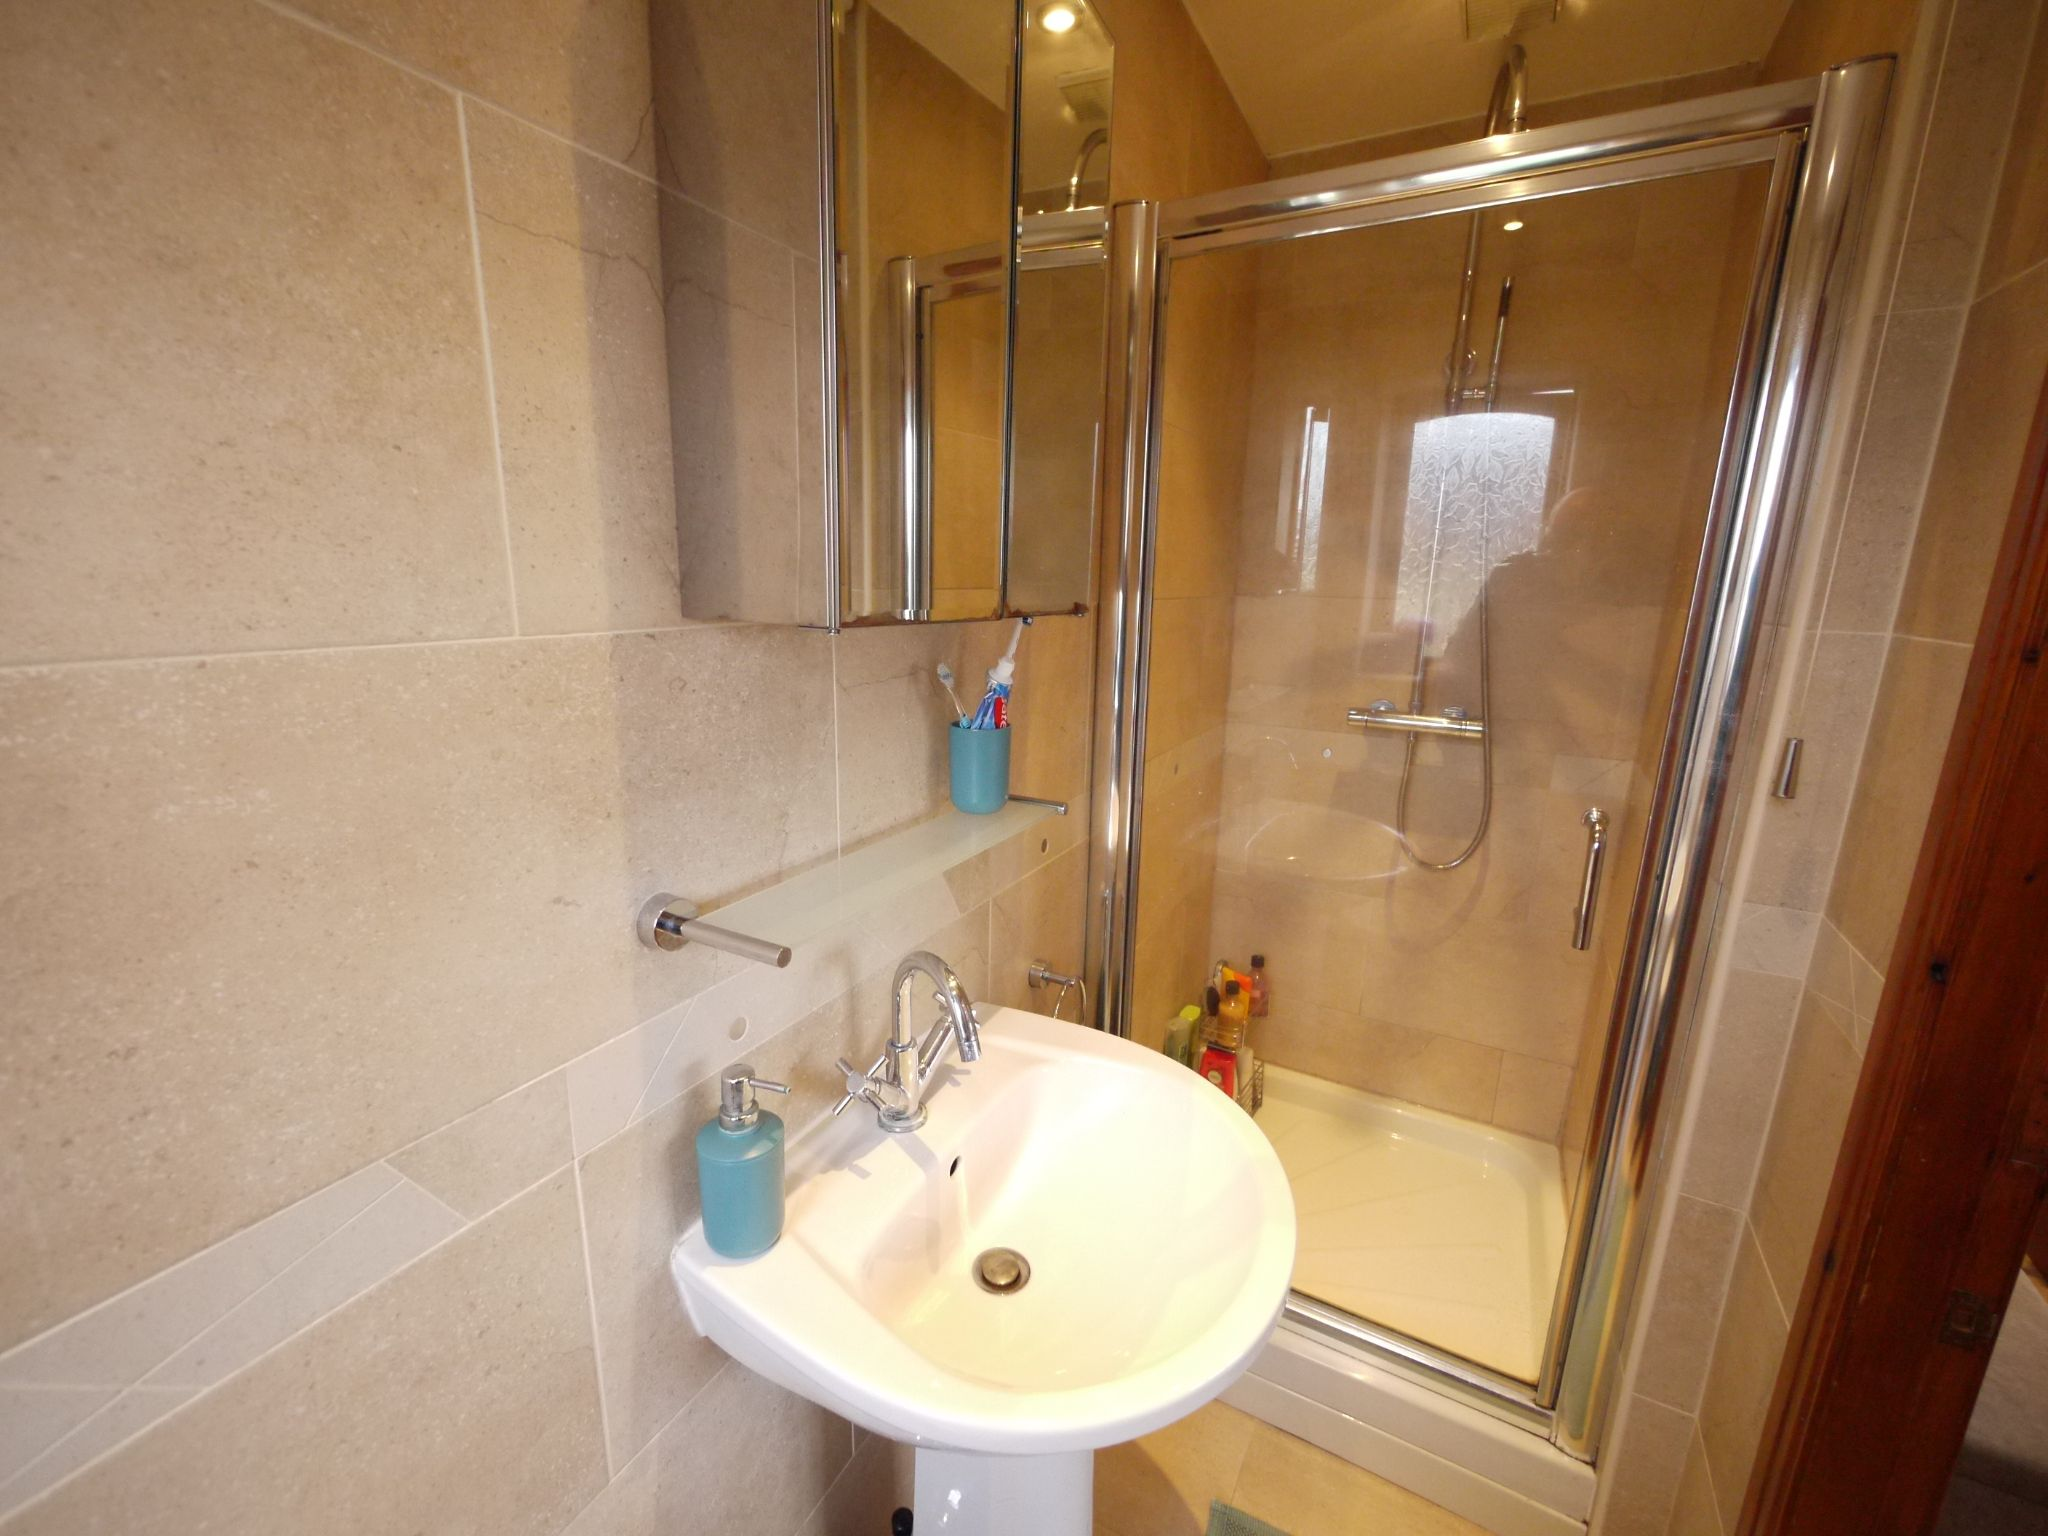 4 bedroom detached house SSTC in Brighouse - Ensuite 2.